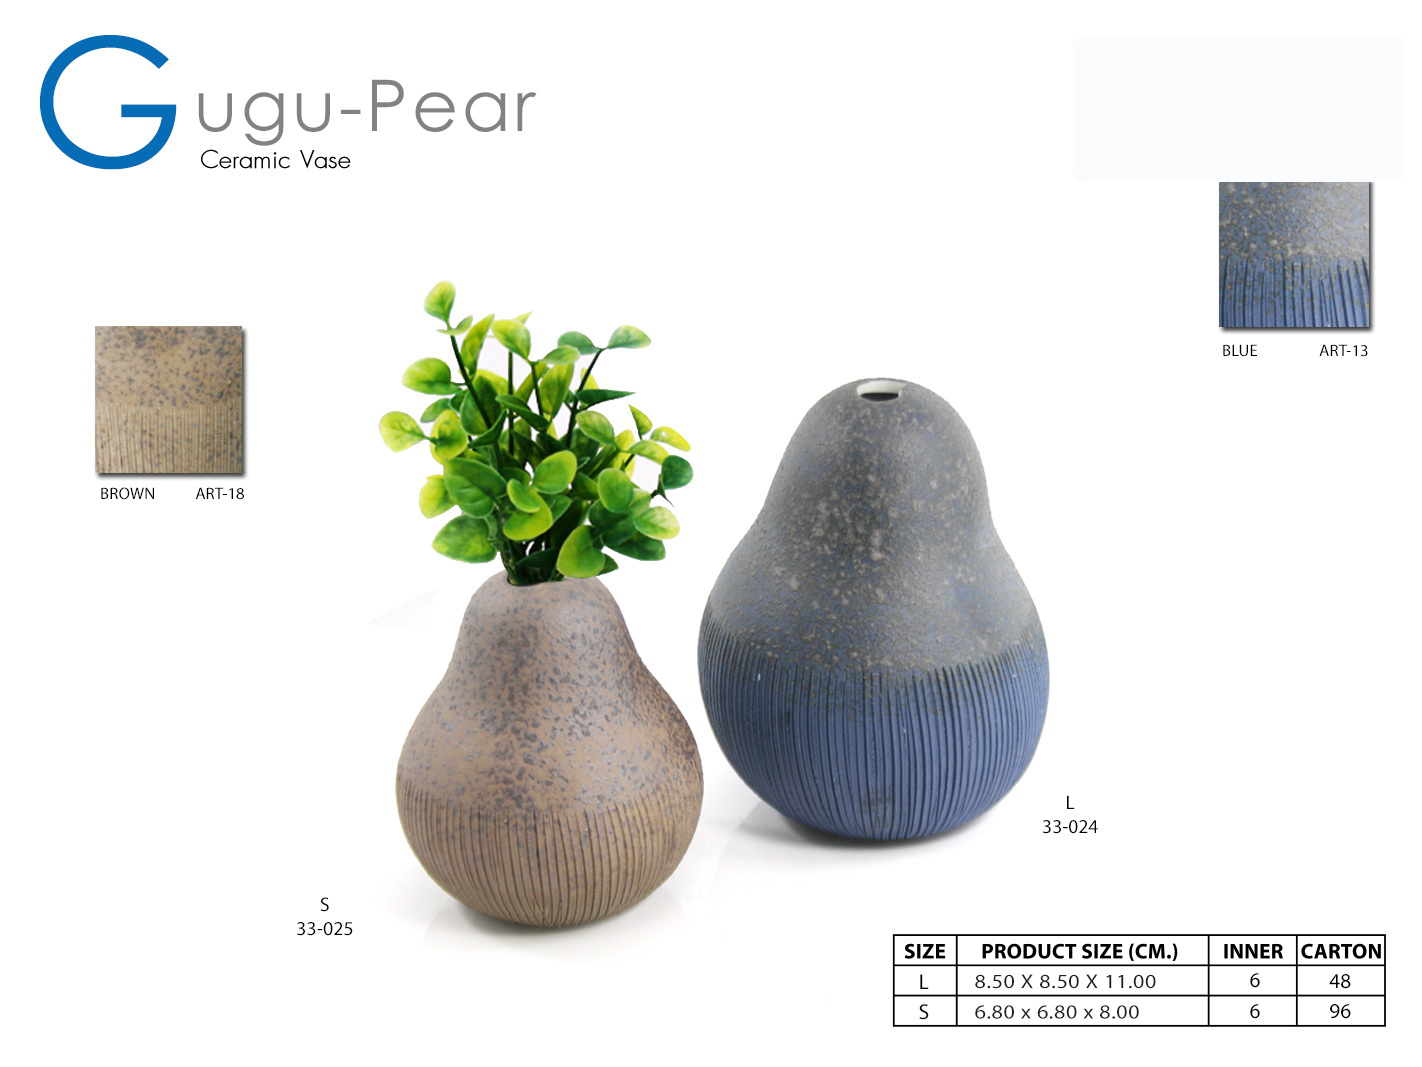 PSCV-GUGU-PEAR-L-SF-9-ART-13-18 (1)